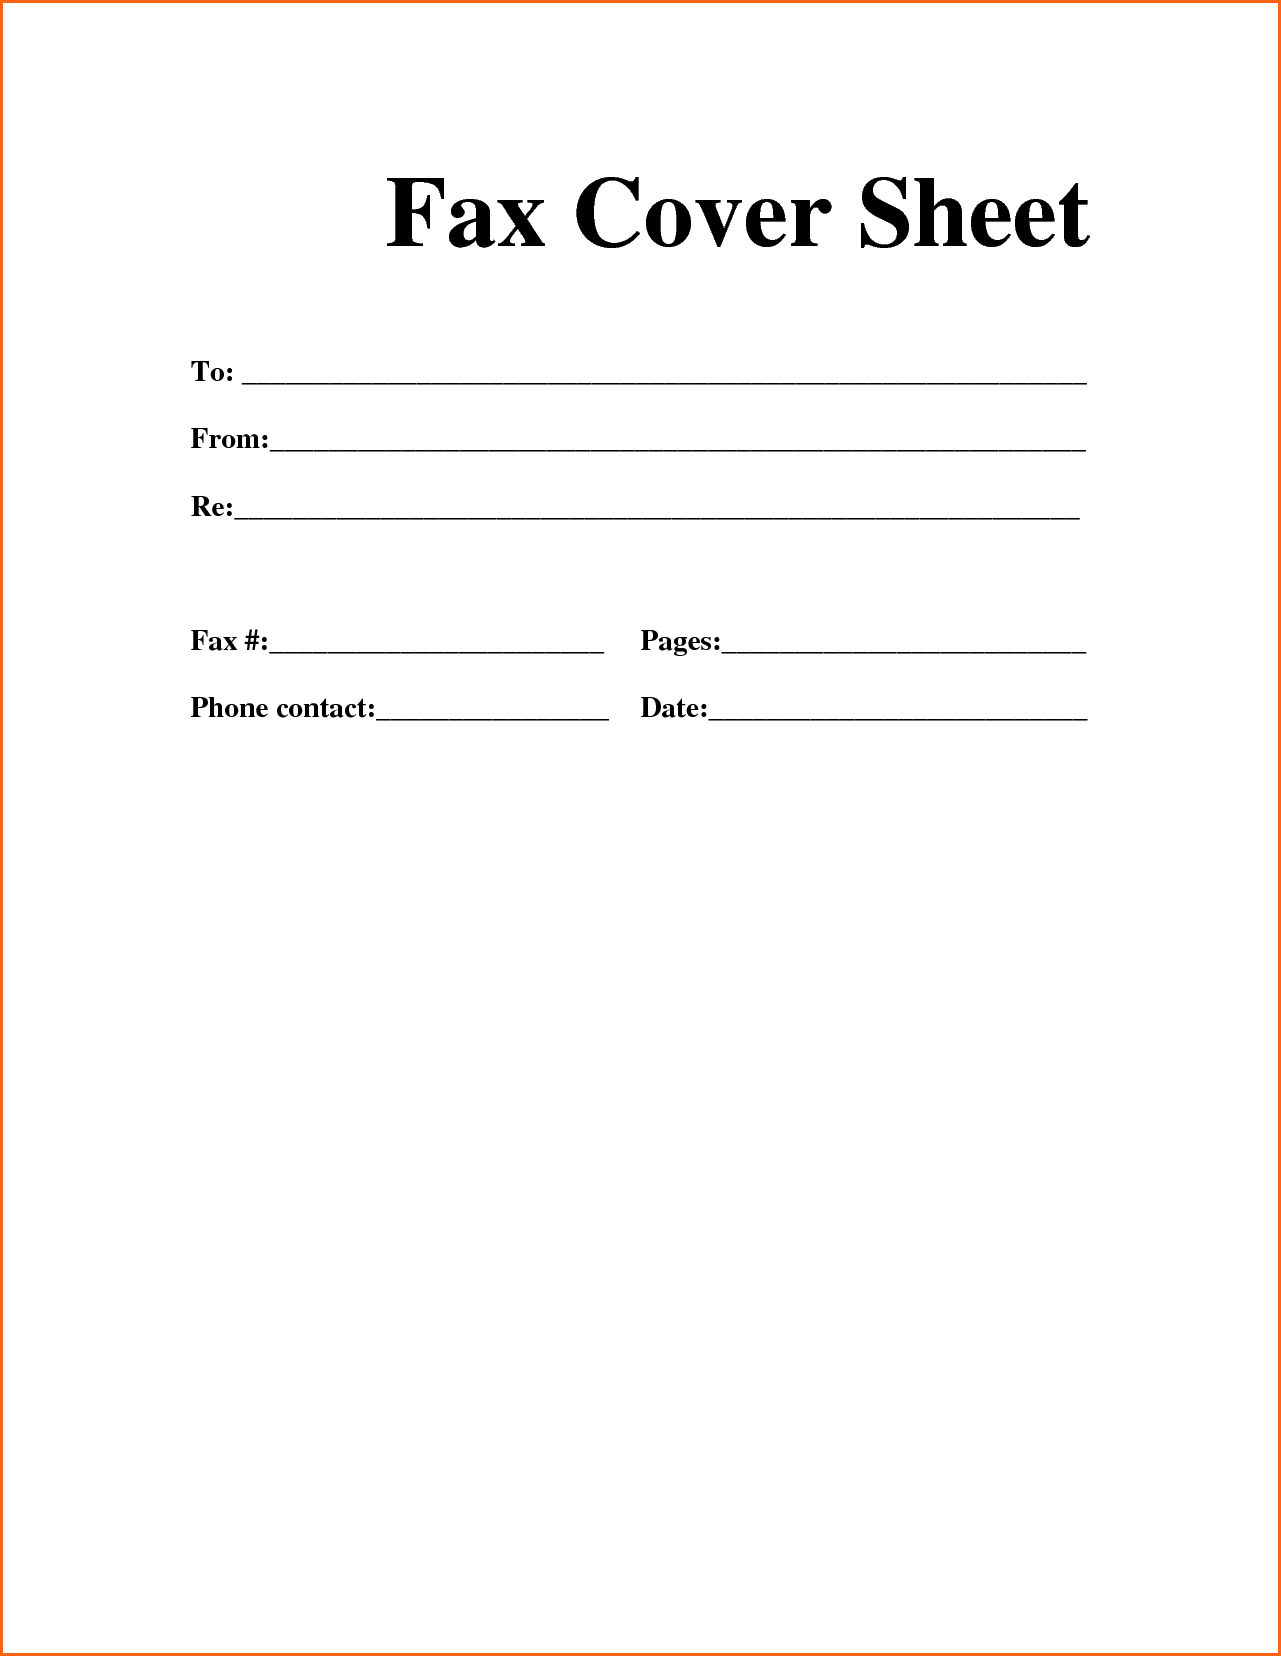 Printable Fax Cover Sheet - Free Fax Cover Sheet Template Printable - Free Printable Fax Cover Sheet